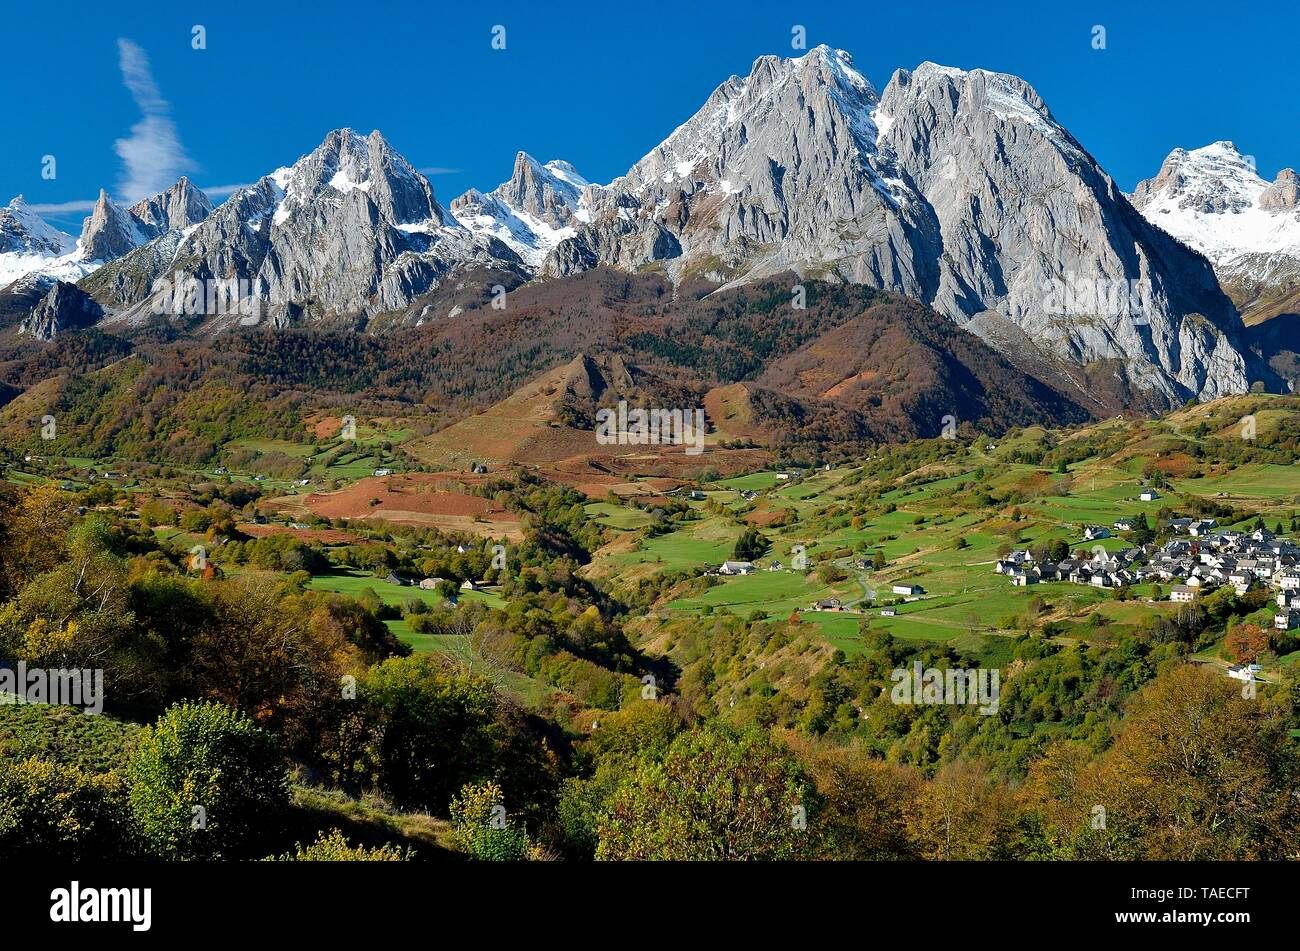 Circus of Lescun in autumn, Aspe Valley, Pyrenees, France Stock Photo